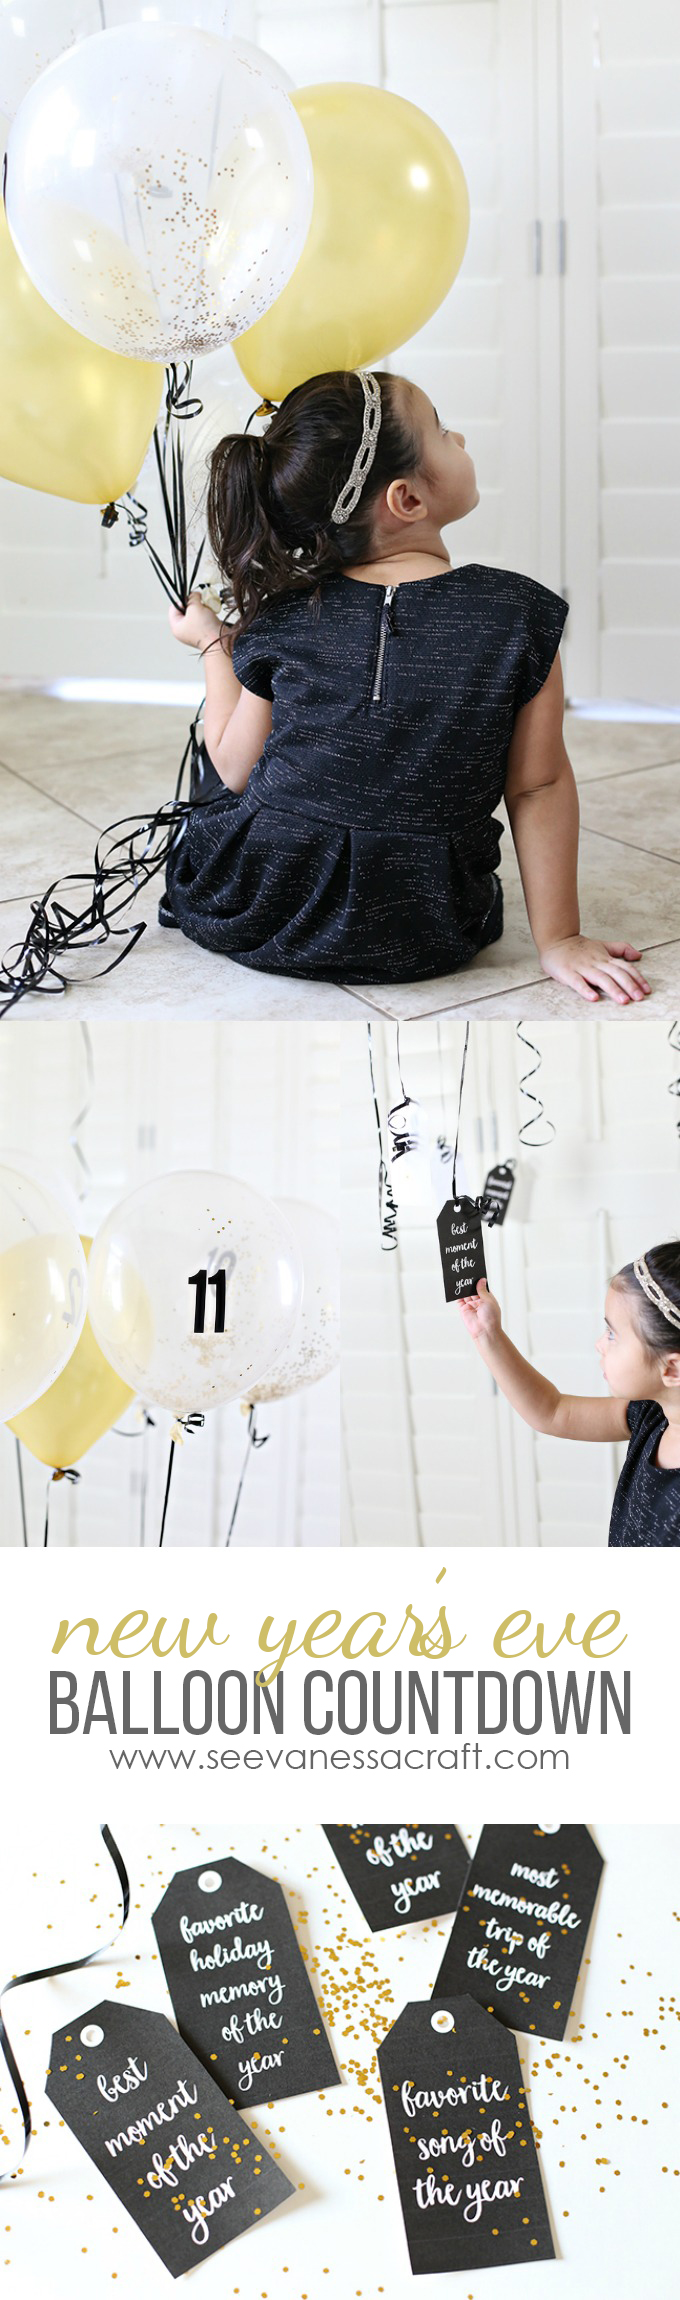 new-years-eve-balloon-memories-countdown-copy